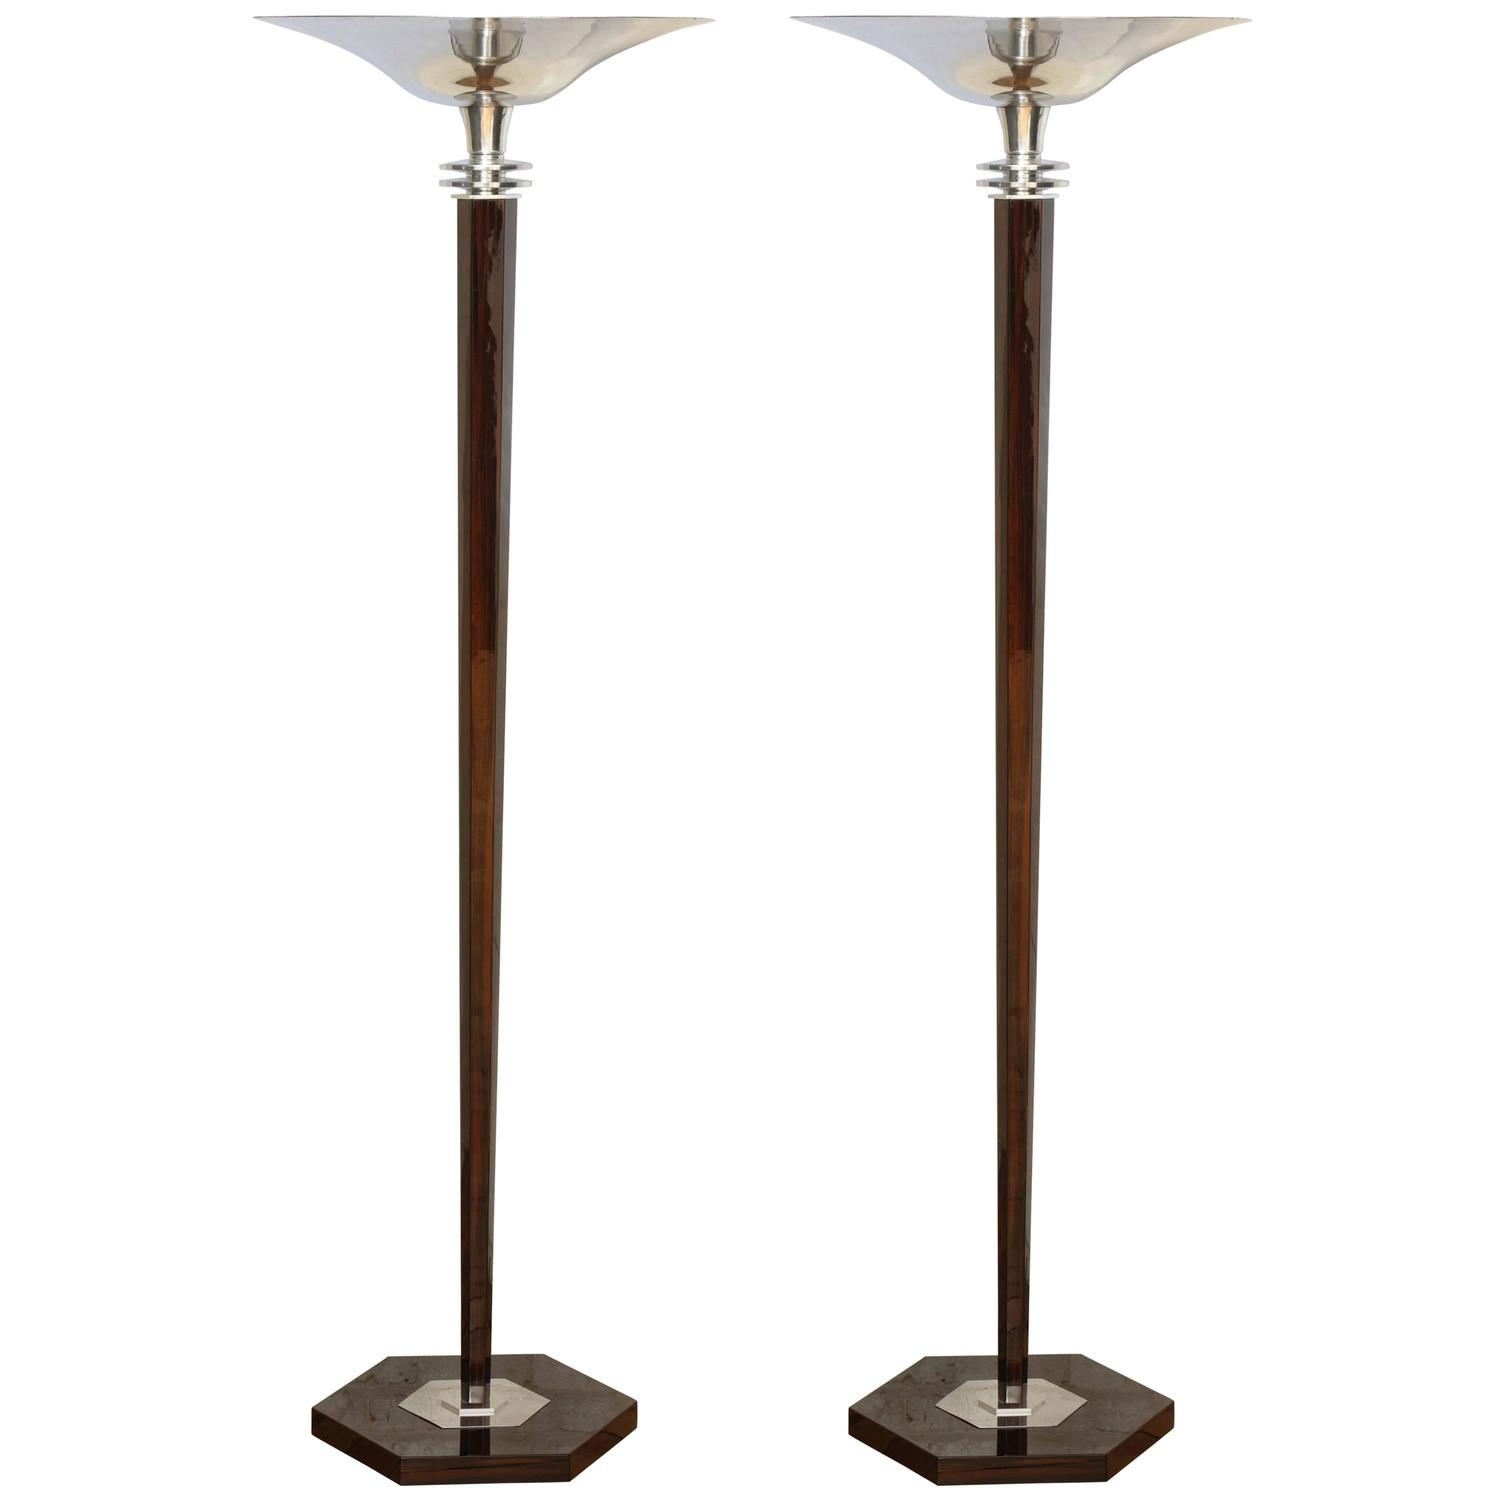 Floor Lamp Vs Torchiere Elegant Art Deco Torchiere Floor Lamp At 1stdibs